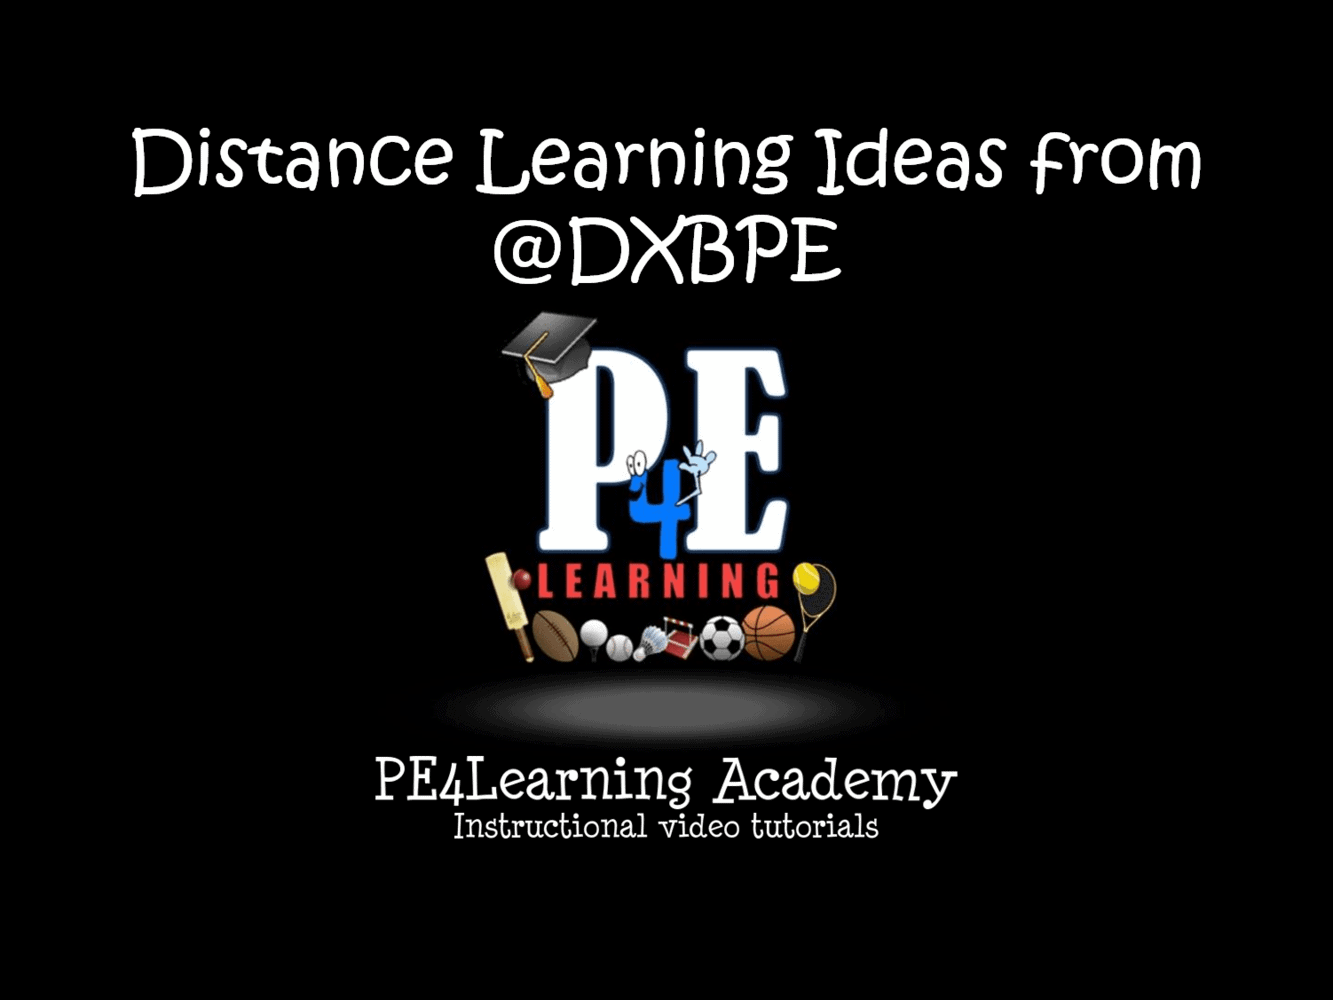 Distance Learning Ideas from @DXBPE